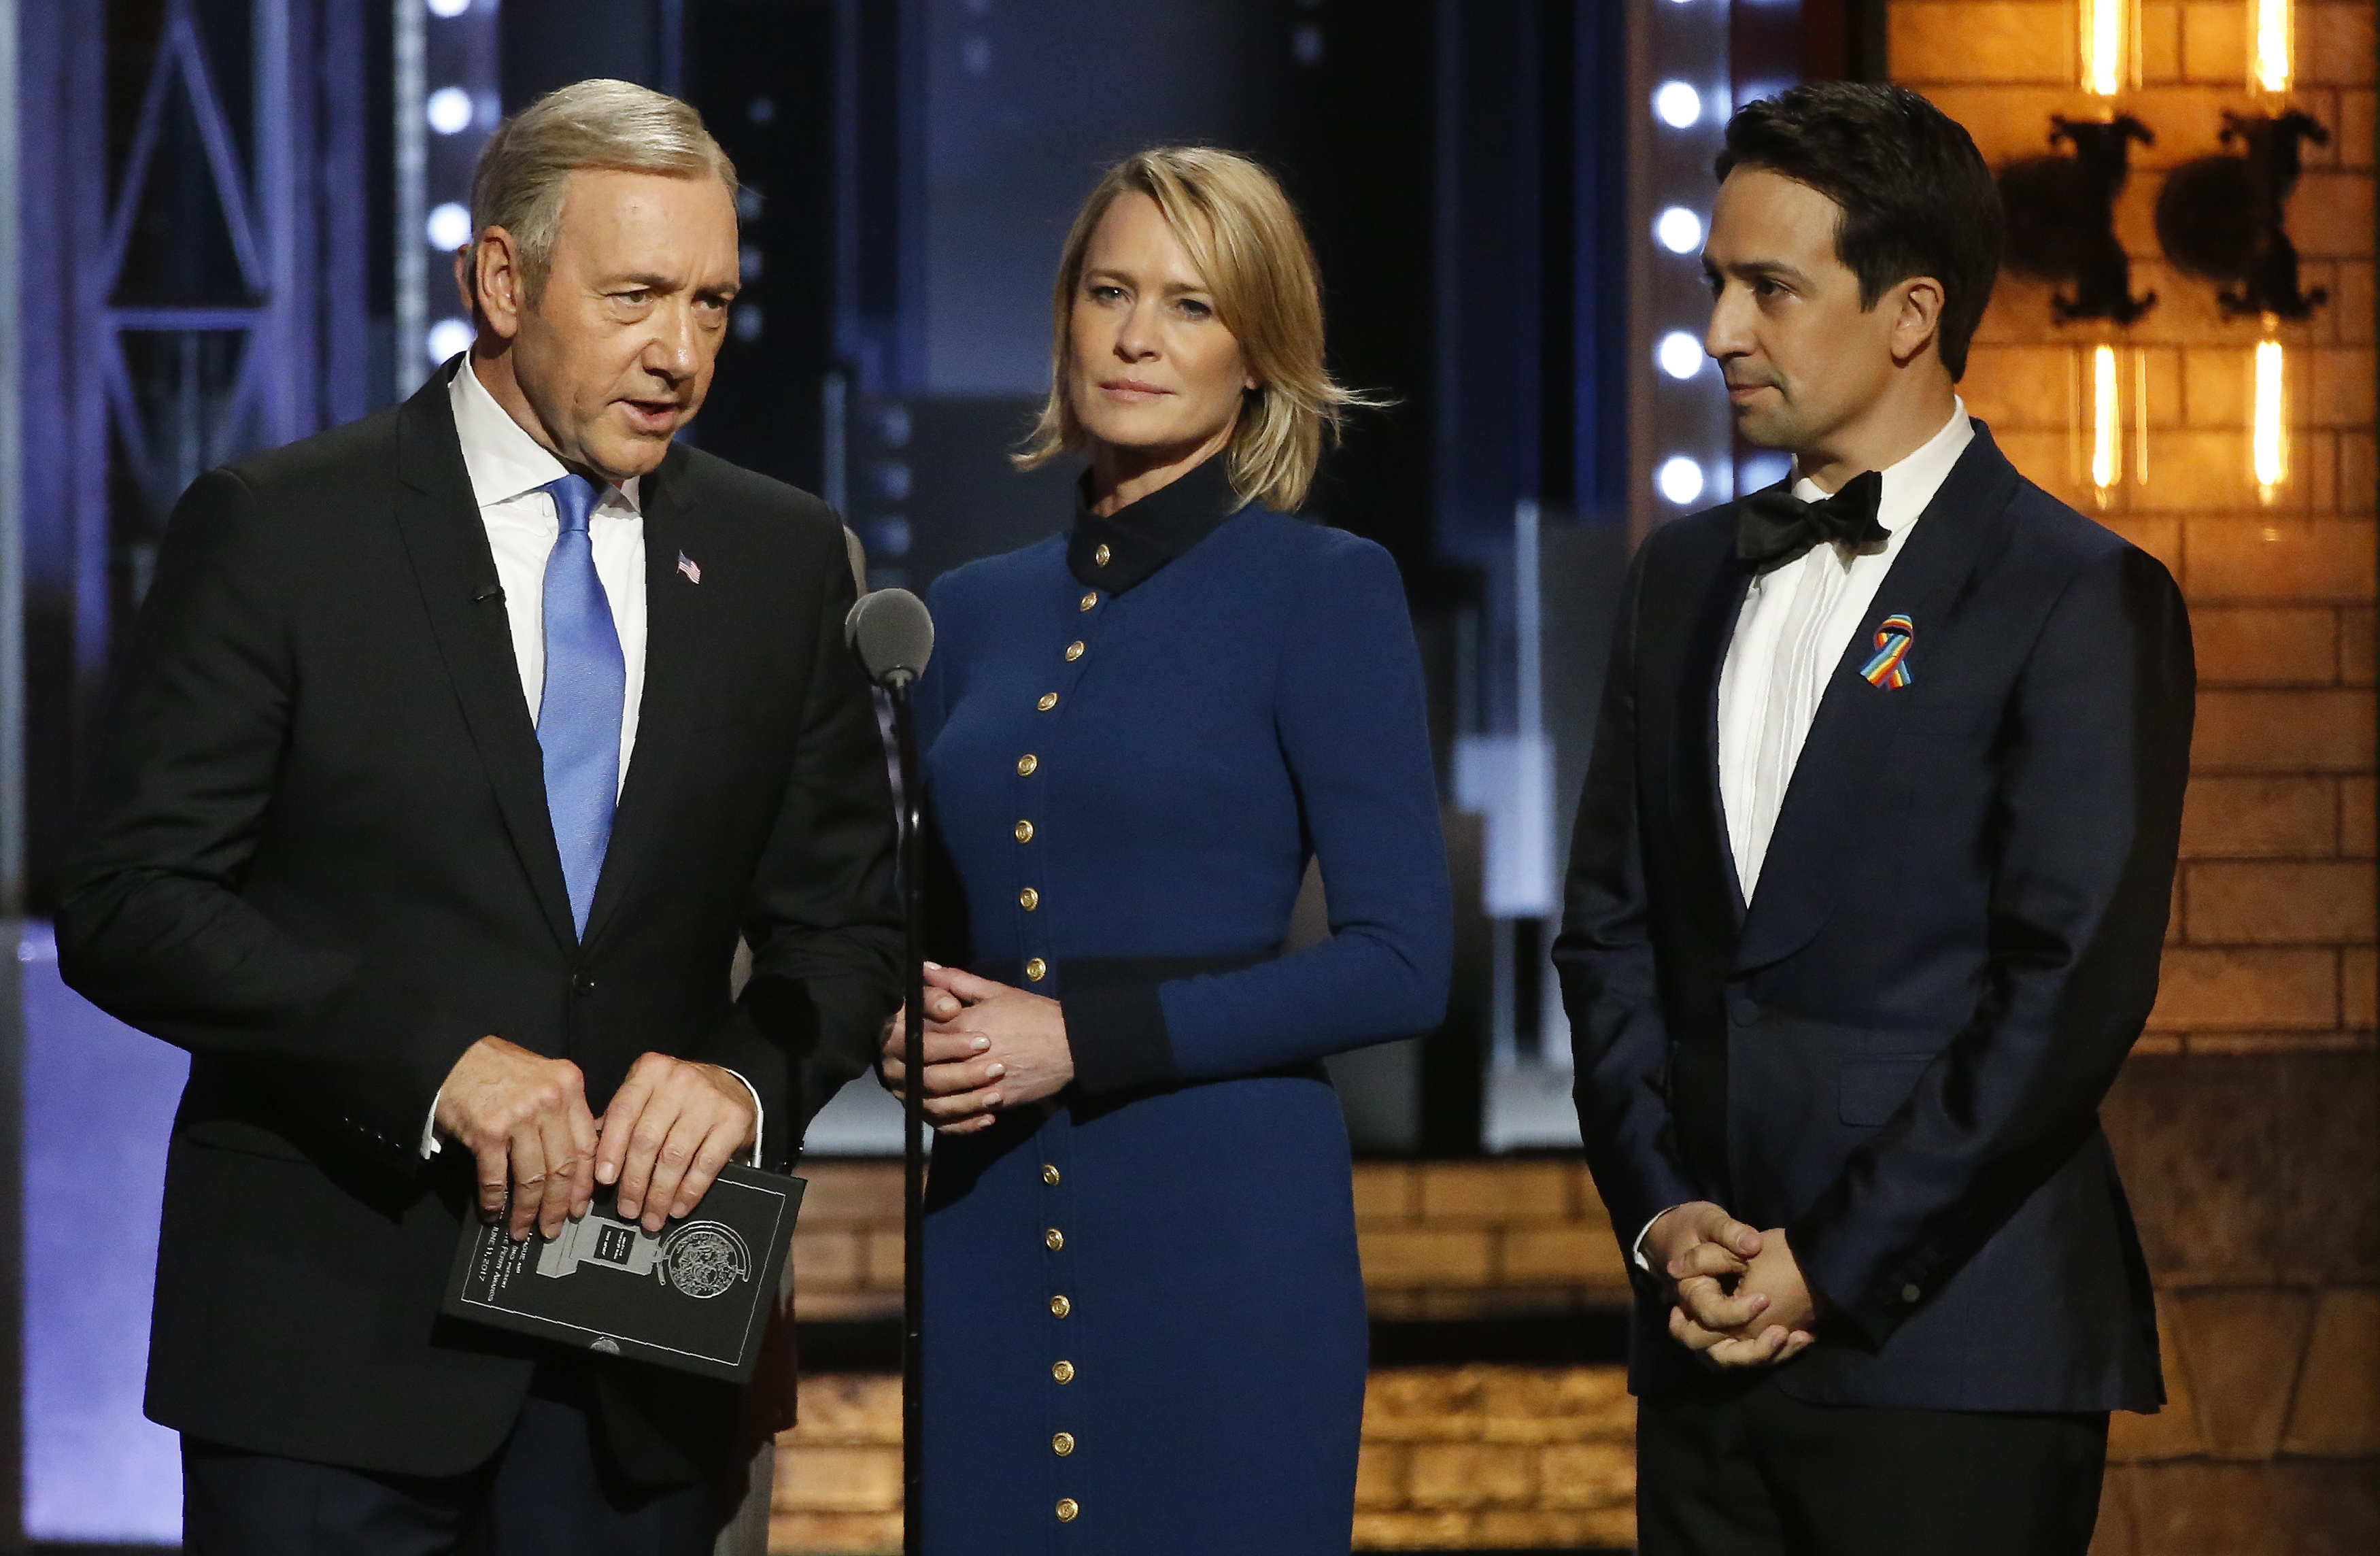 71st Tony Awards – Show – New York City, U.S., 11/06/2017 - Playwright Lin Manuel Miranda with House of Cards cast members Kevin Spacey and Robin Wright. REUTERS/Carlo Allegri - HP1ED6C09Z5P6